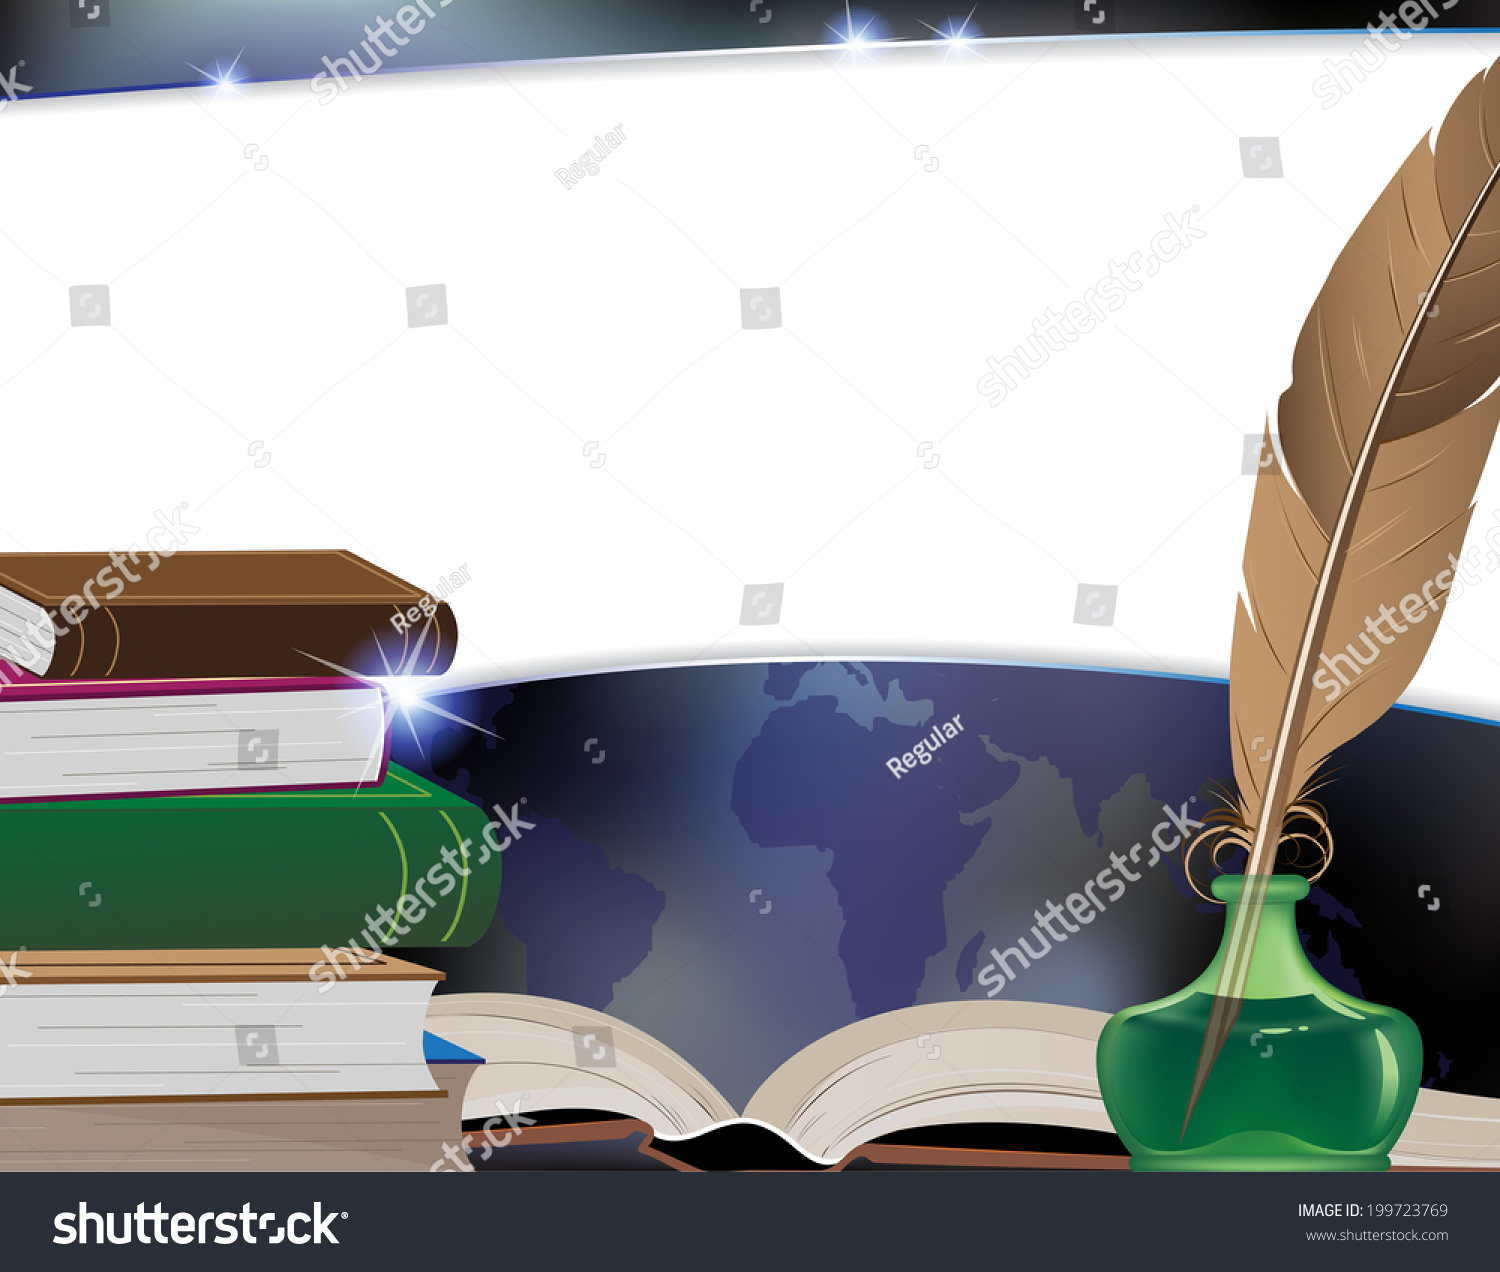 Ancient Soapstone Inkwell Stock Photo: Ancient Books, Writing Feather, Inkwell And Travel Map